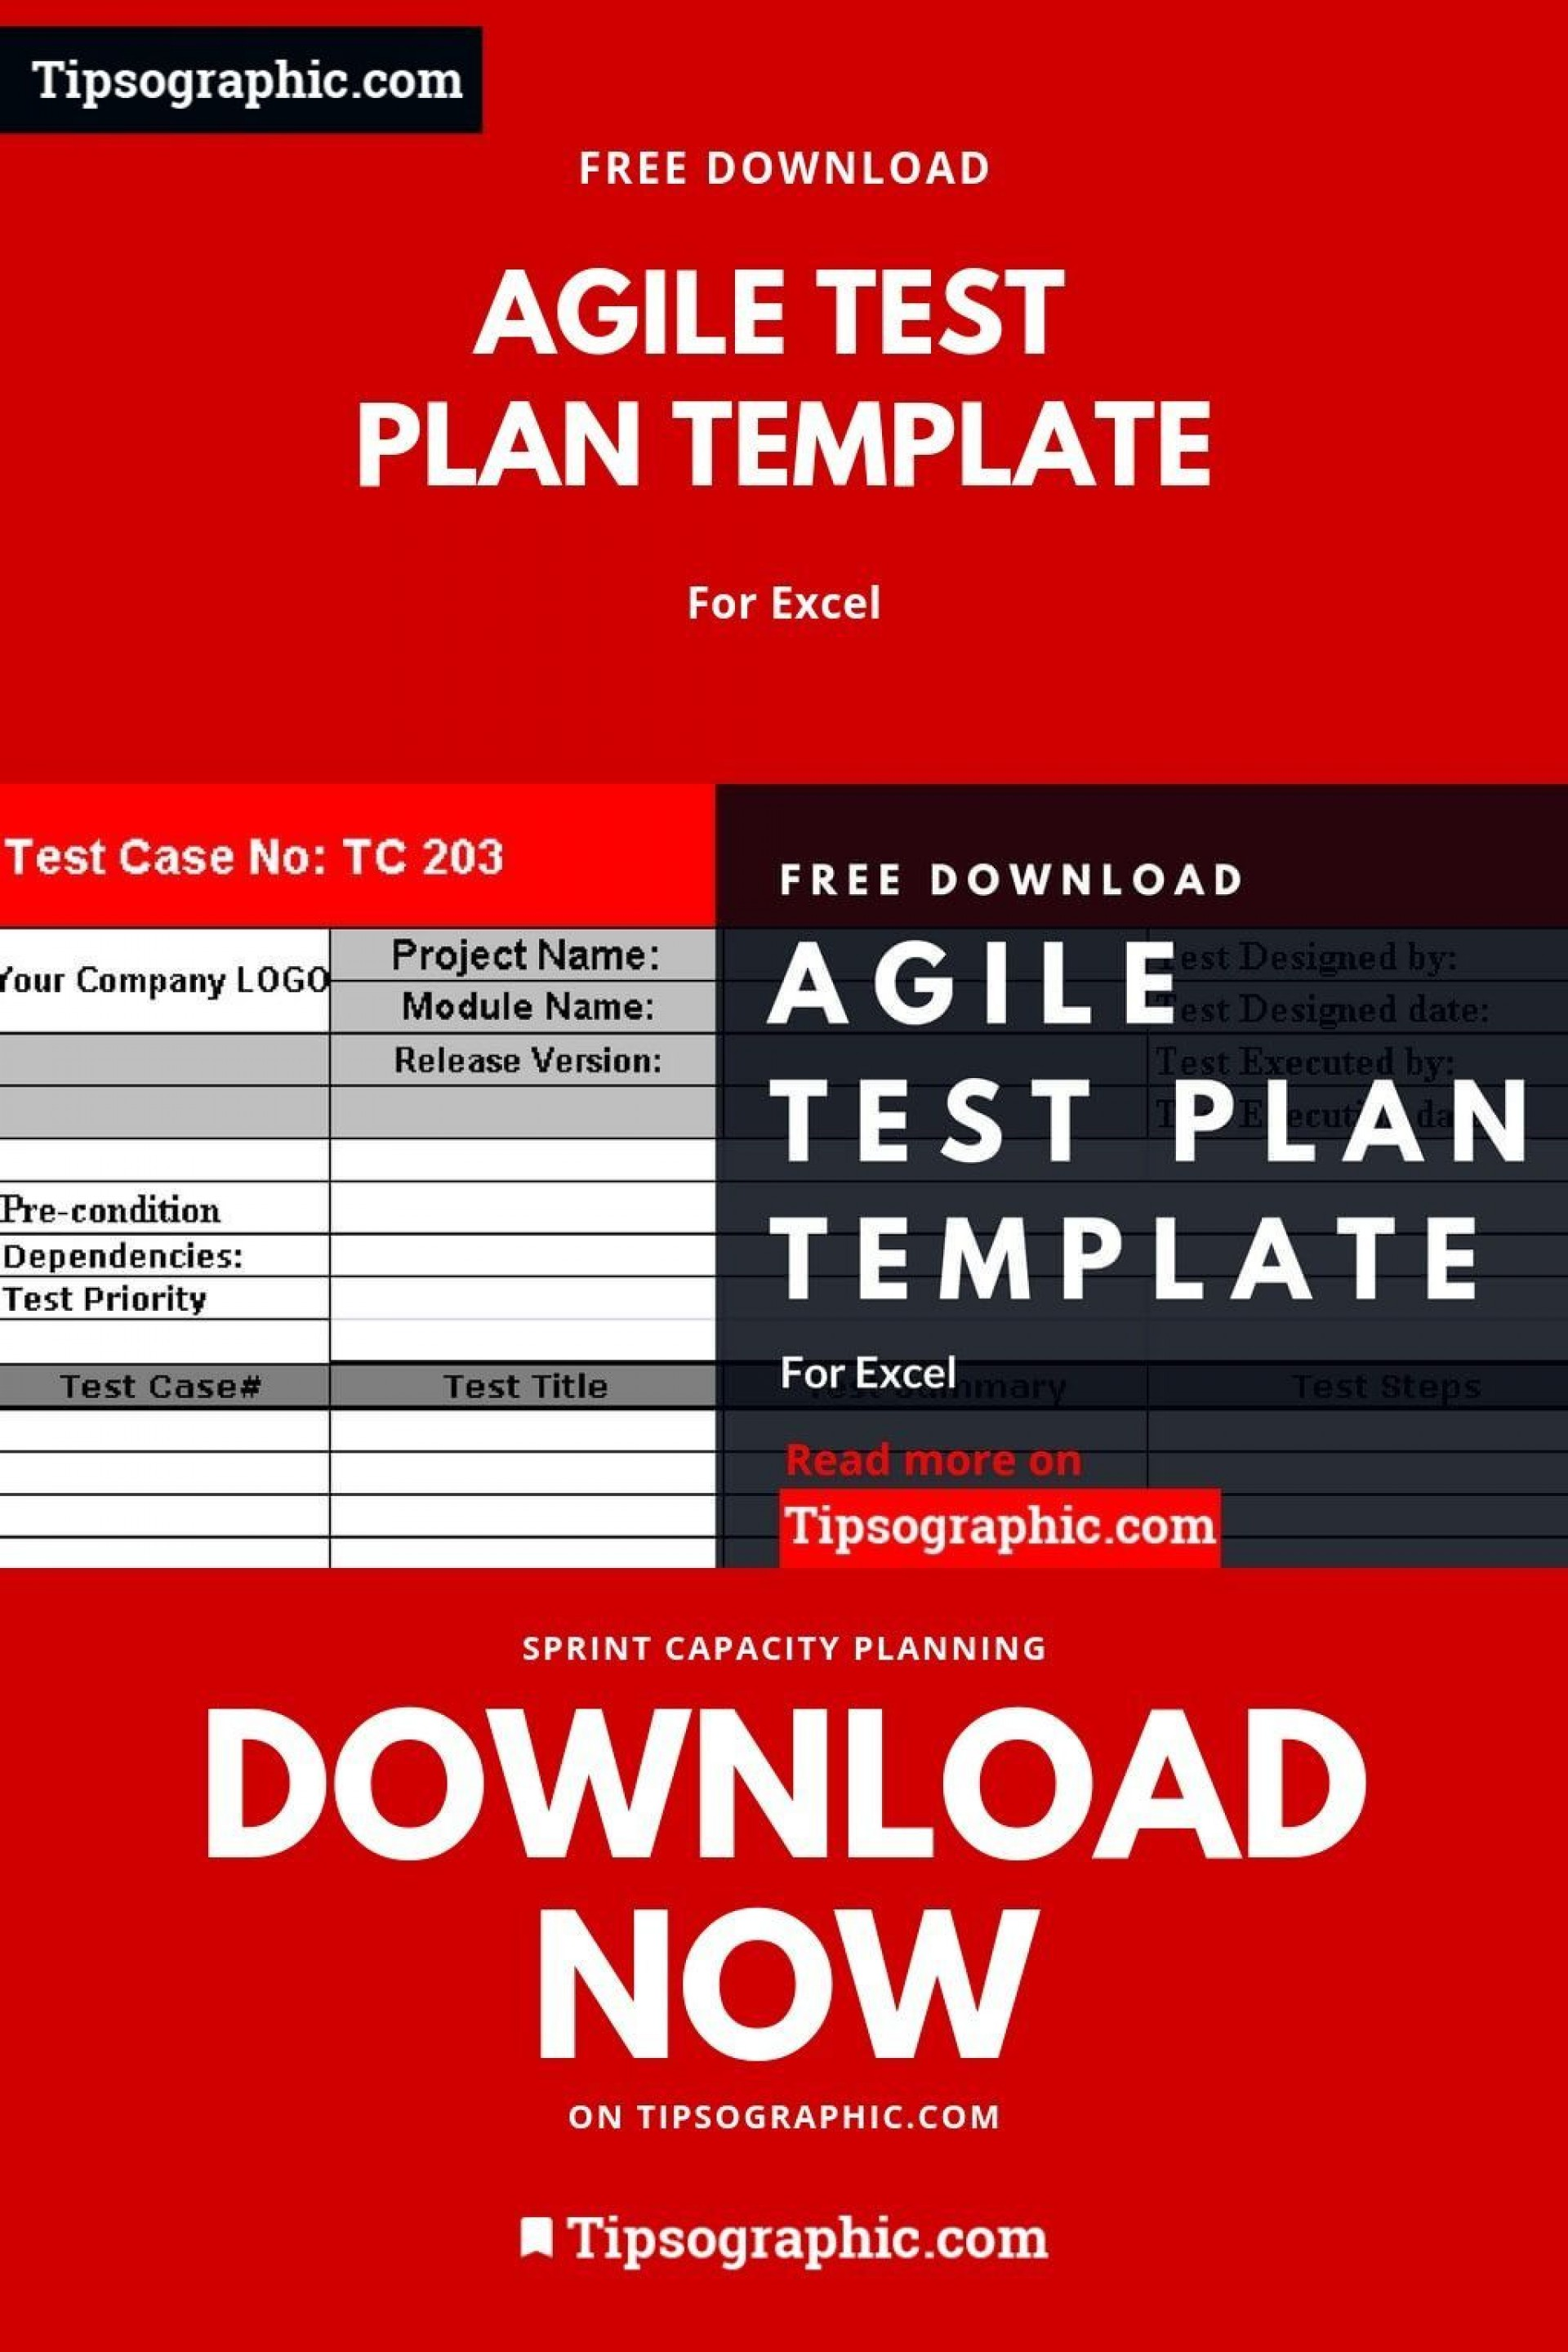 002 Staggering Agile Test Plan Template Sample  Word Example Document1920